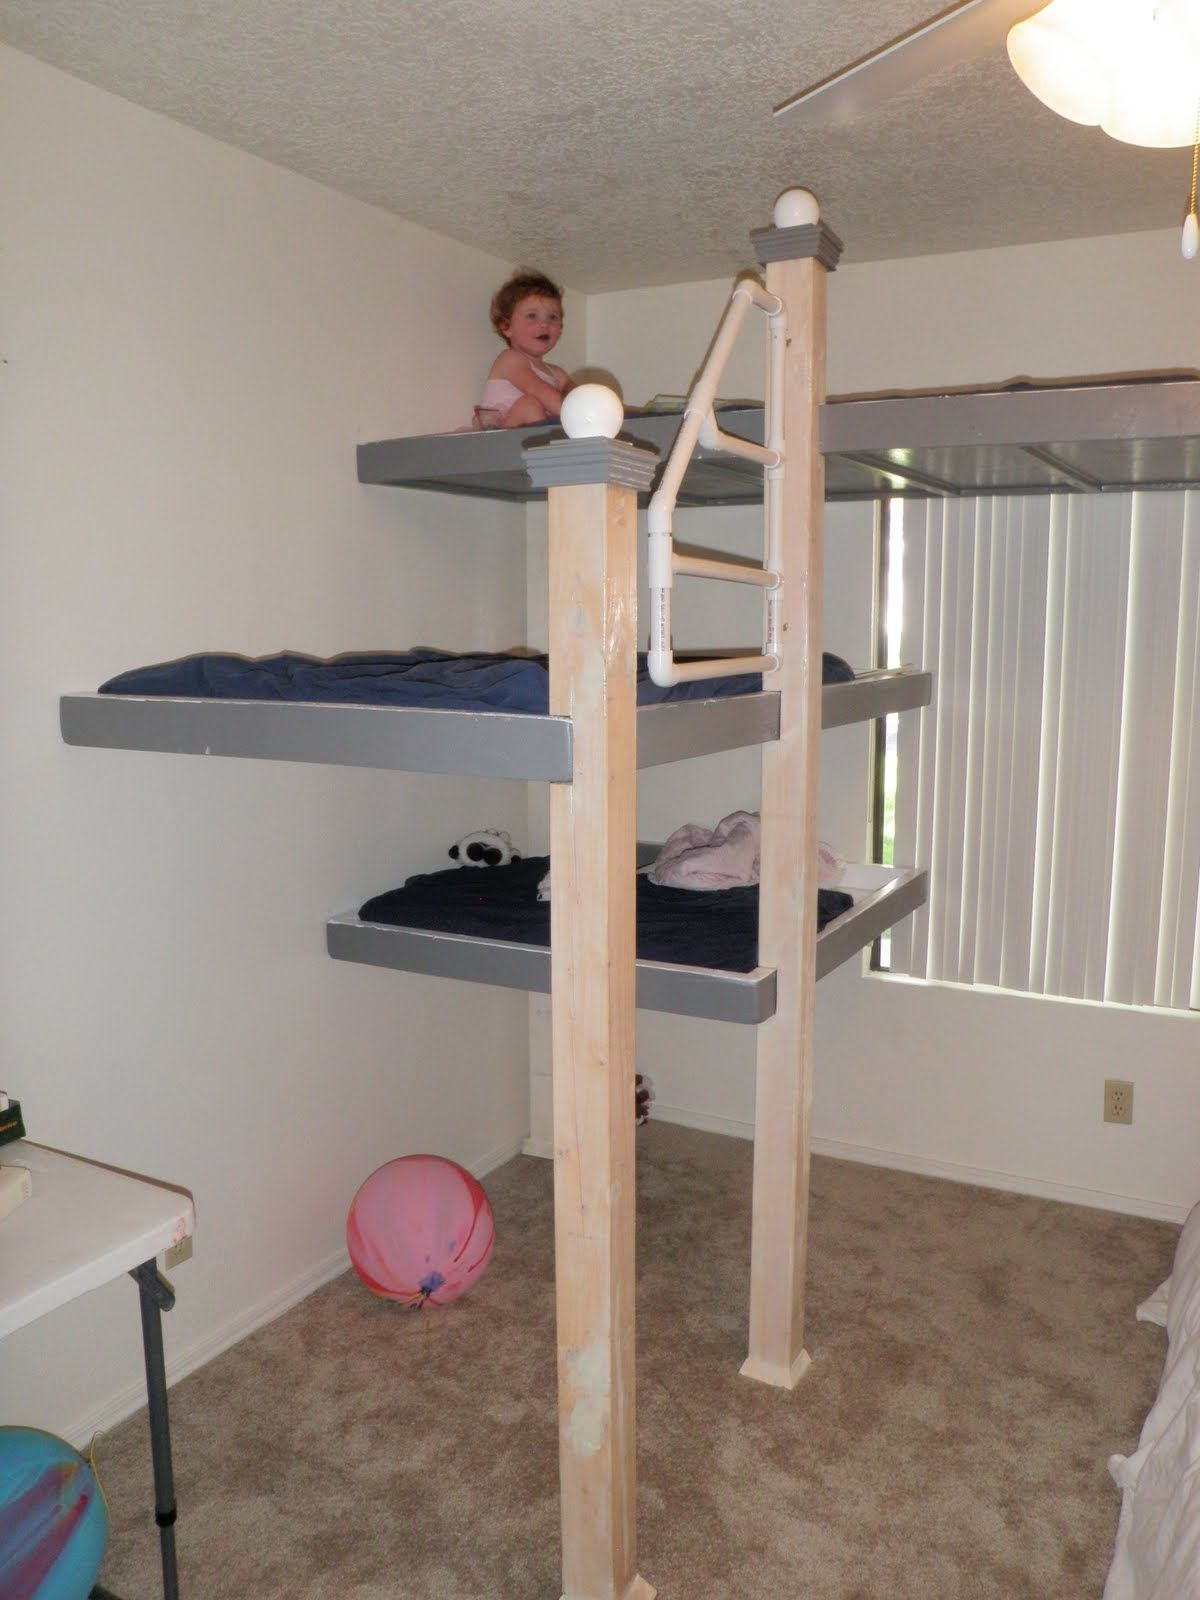 Coolest Bunk Beds Ever For More Awesome Bunk Bed Ideas Take A Look At Homeizy Com Cool Bunk Beds Modern Bunk Beds Cheap Bunk Beds